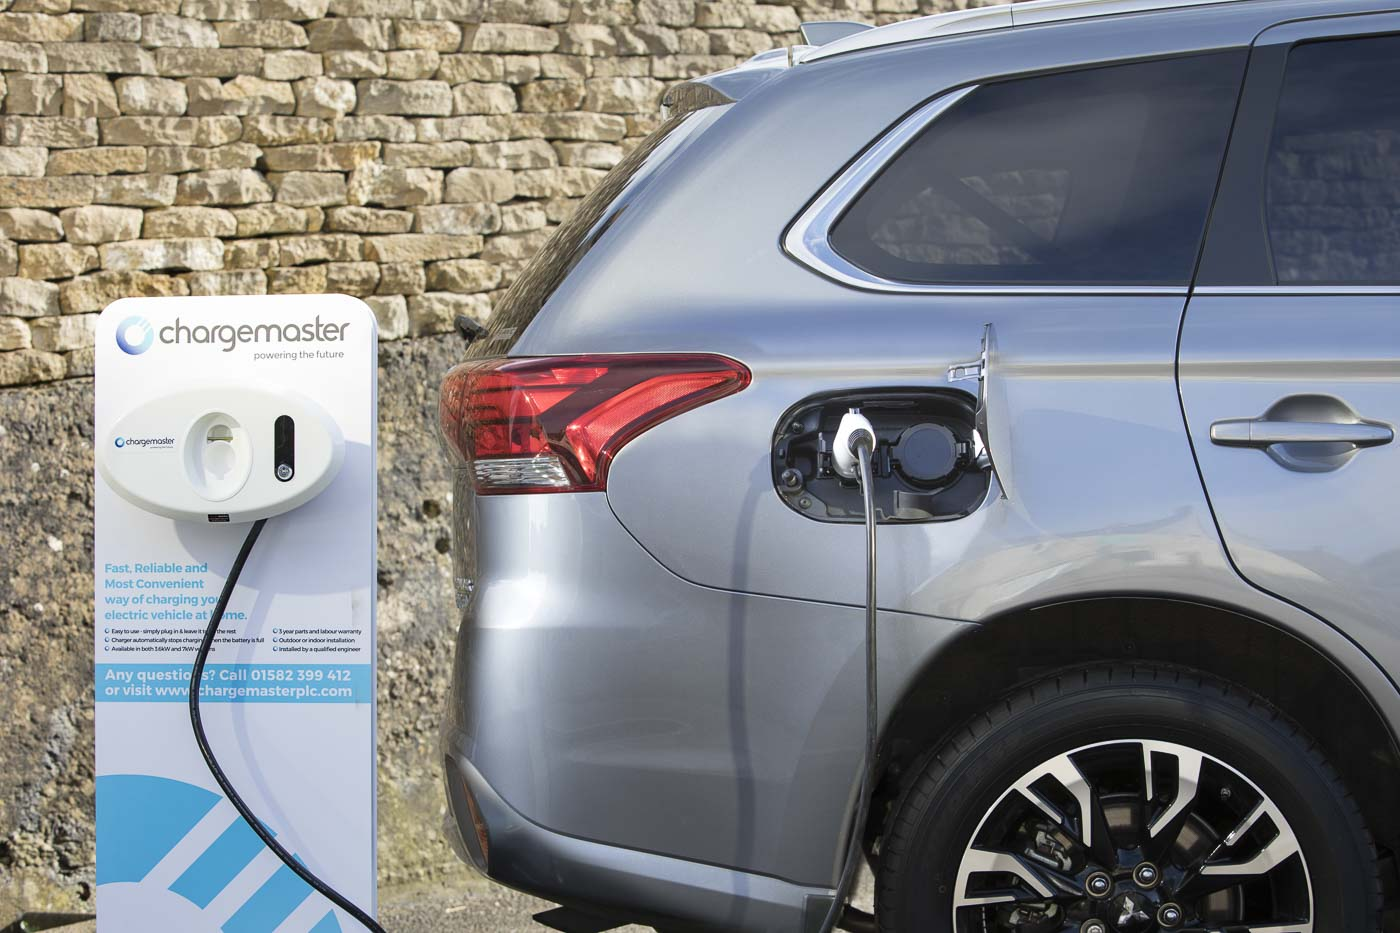 Plugin Hybrid Electric Vehicles Phevs